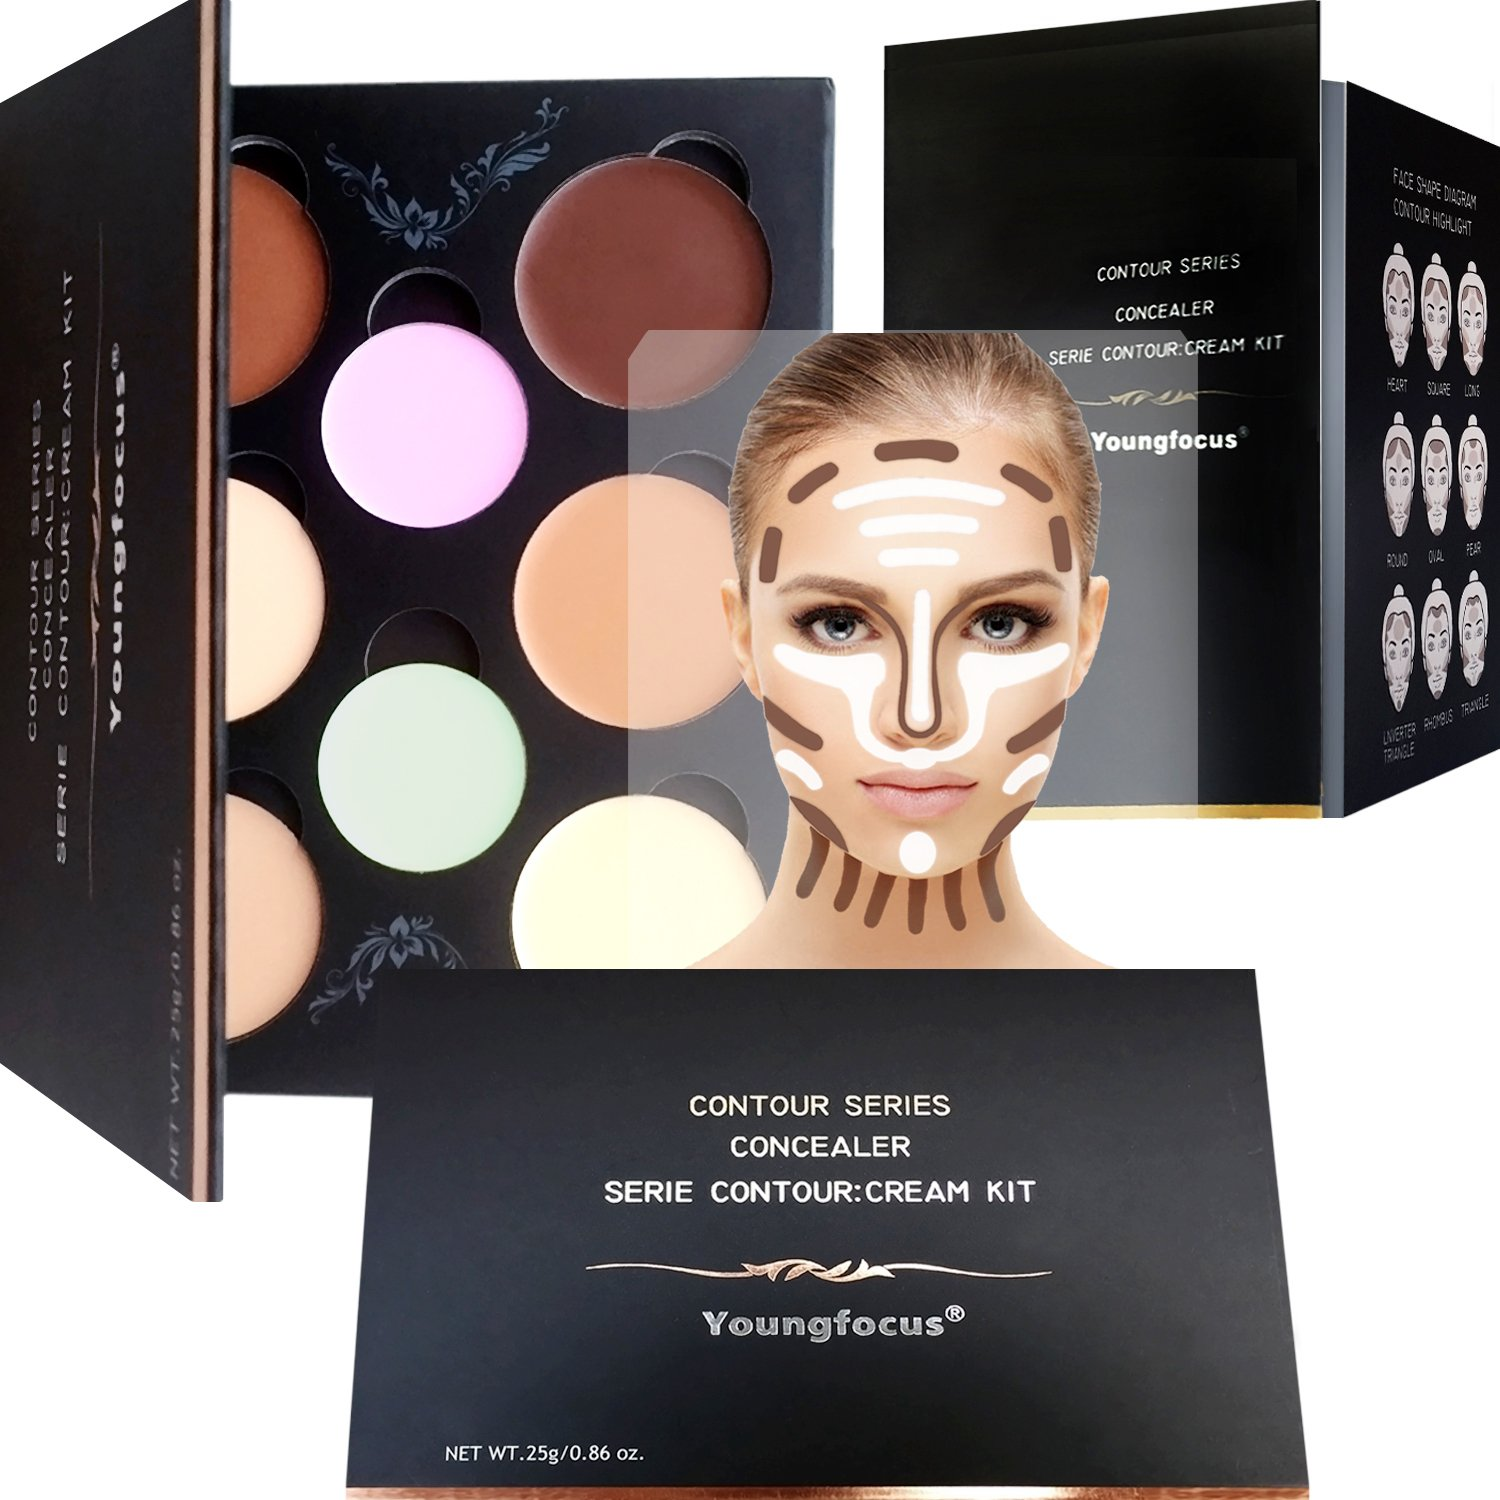 Cream Contour Palette Makeup kit – Youngfocus Best 8 Colors Cosmetics Highlighting Face Contouring Foundation Concealer for Hypoallergenic Moisturizing Light and Breathable Contour kit Comprise Contouring Guide Included